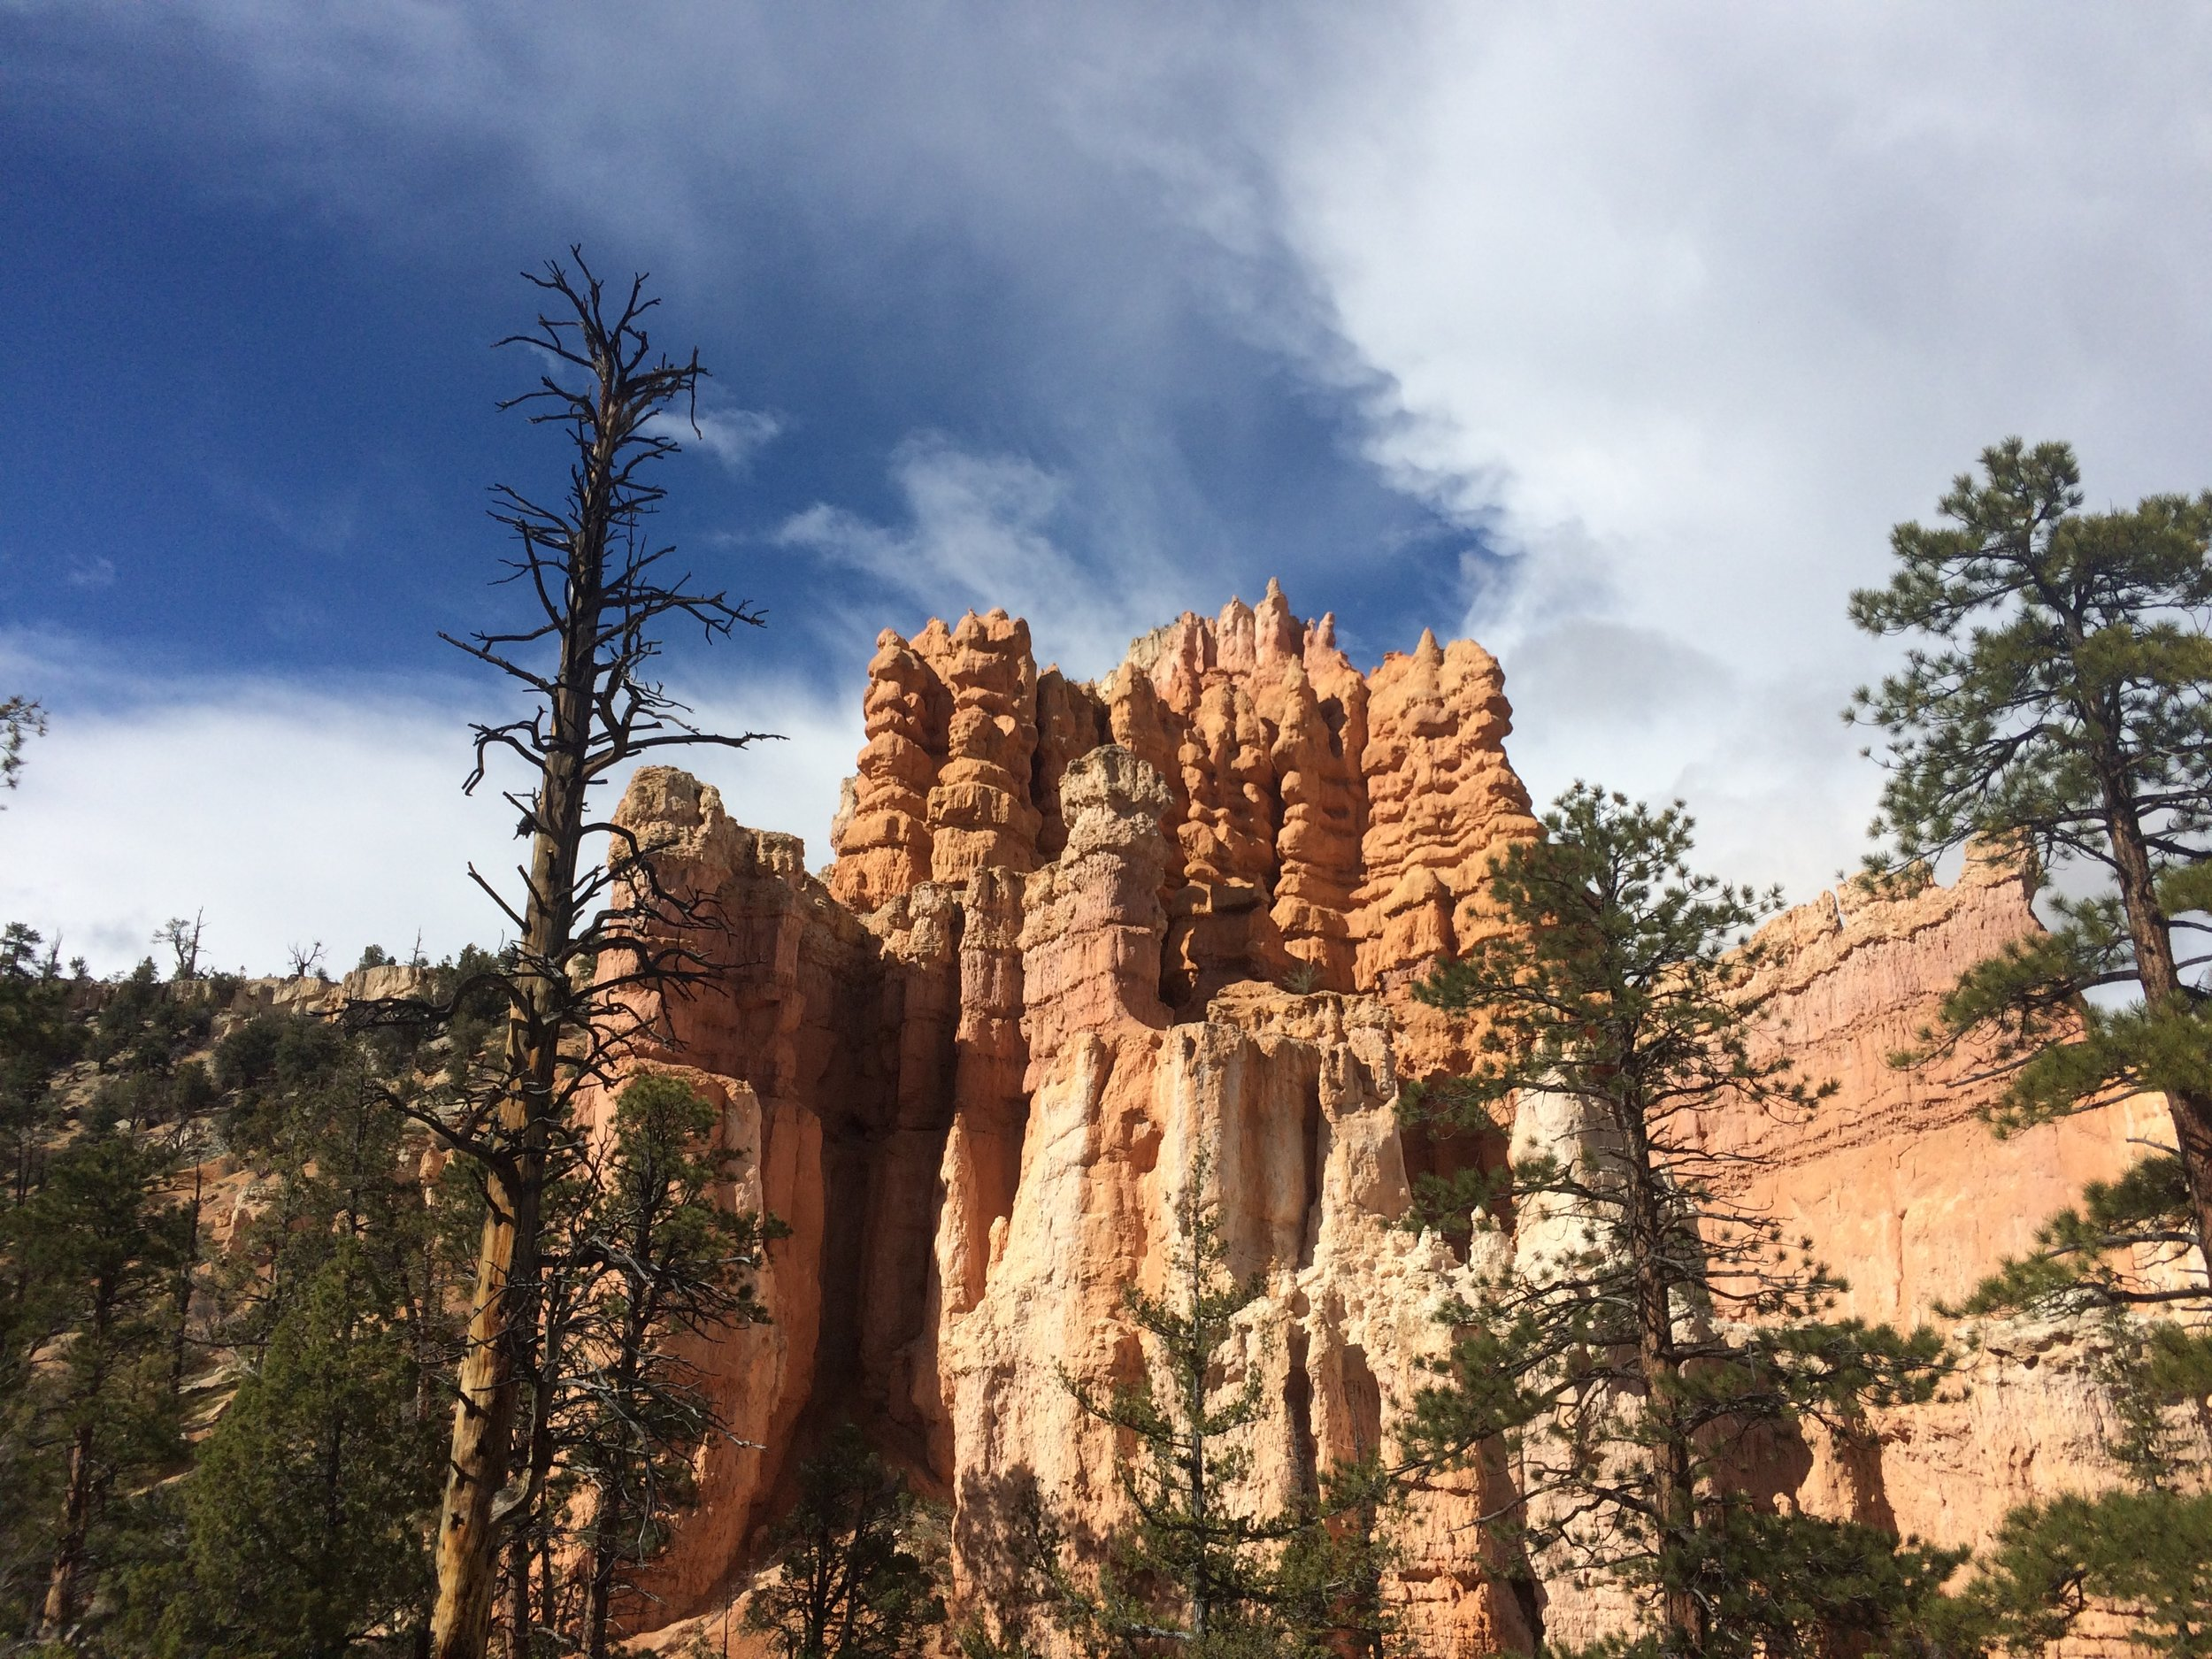 A distinct hoodoo formation